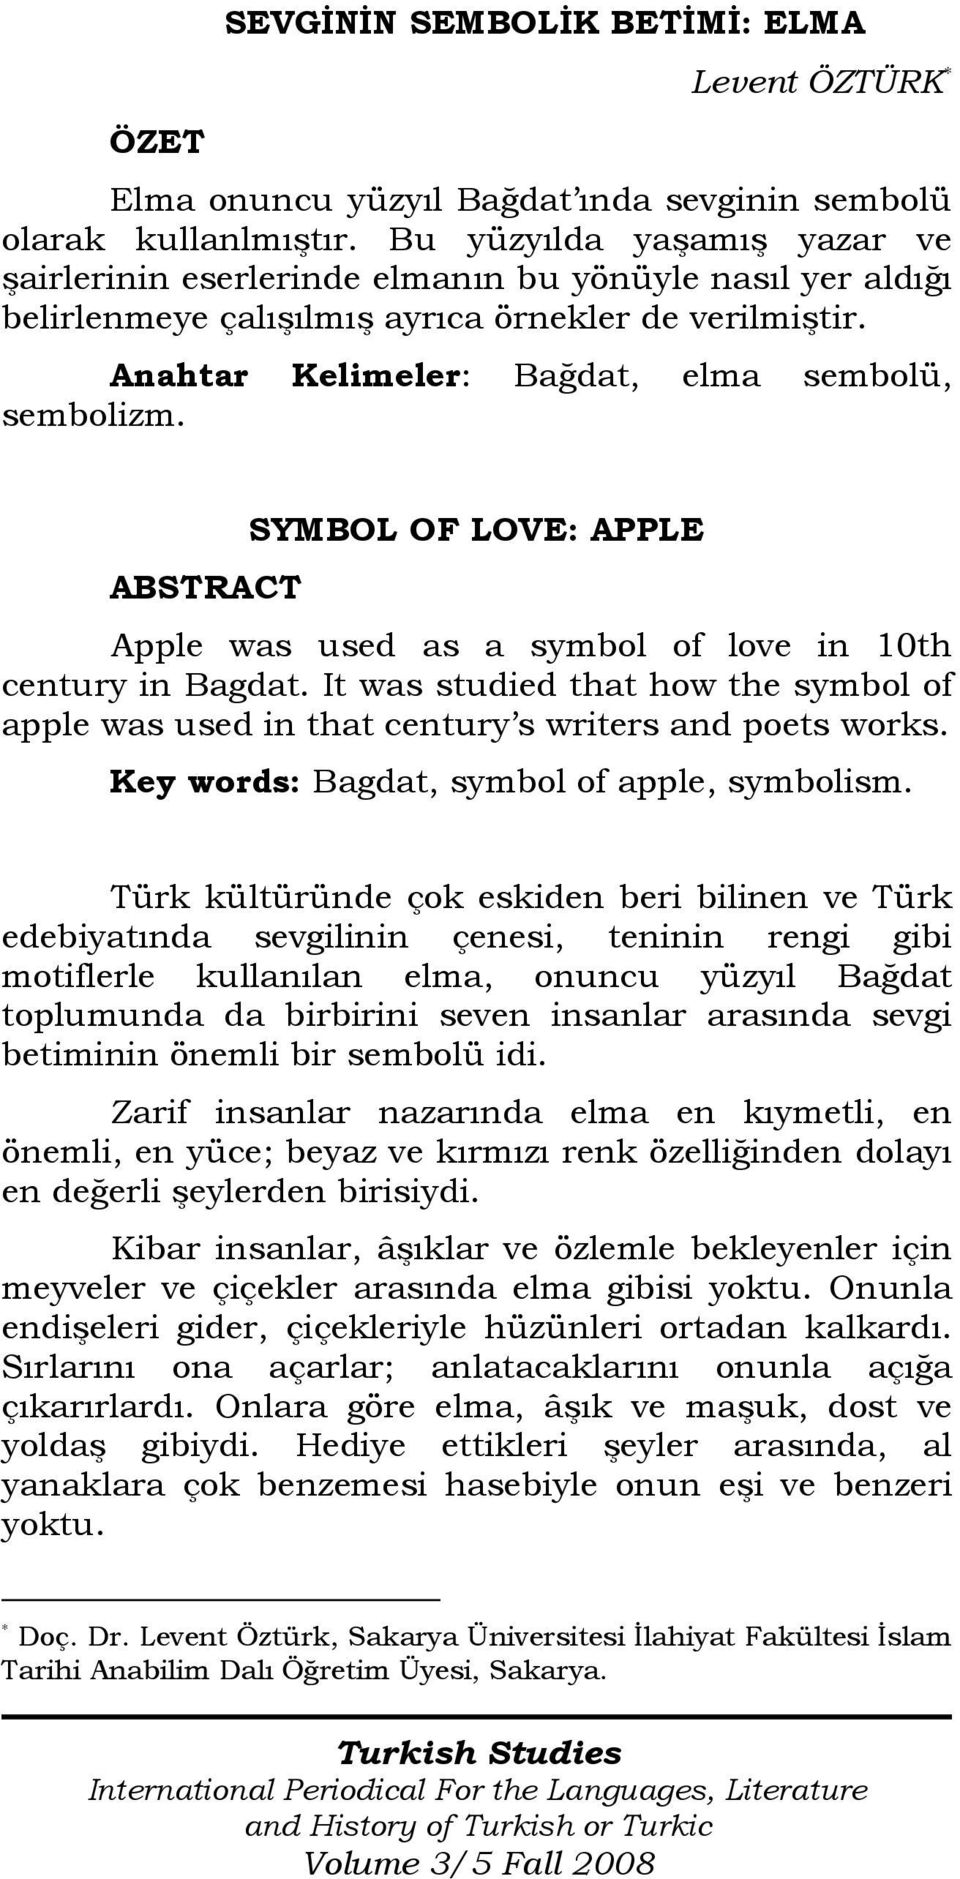 ABSTRACT SYMBOL OF LOVE: APPLE Apple was used as a symbol of love in 10th century in Bagdat. It was studied that how the symbol of apple was used in that century s writers and poets works.